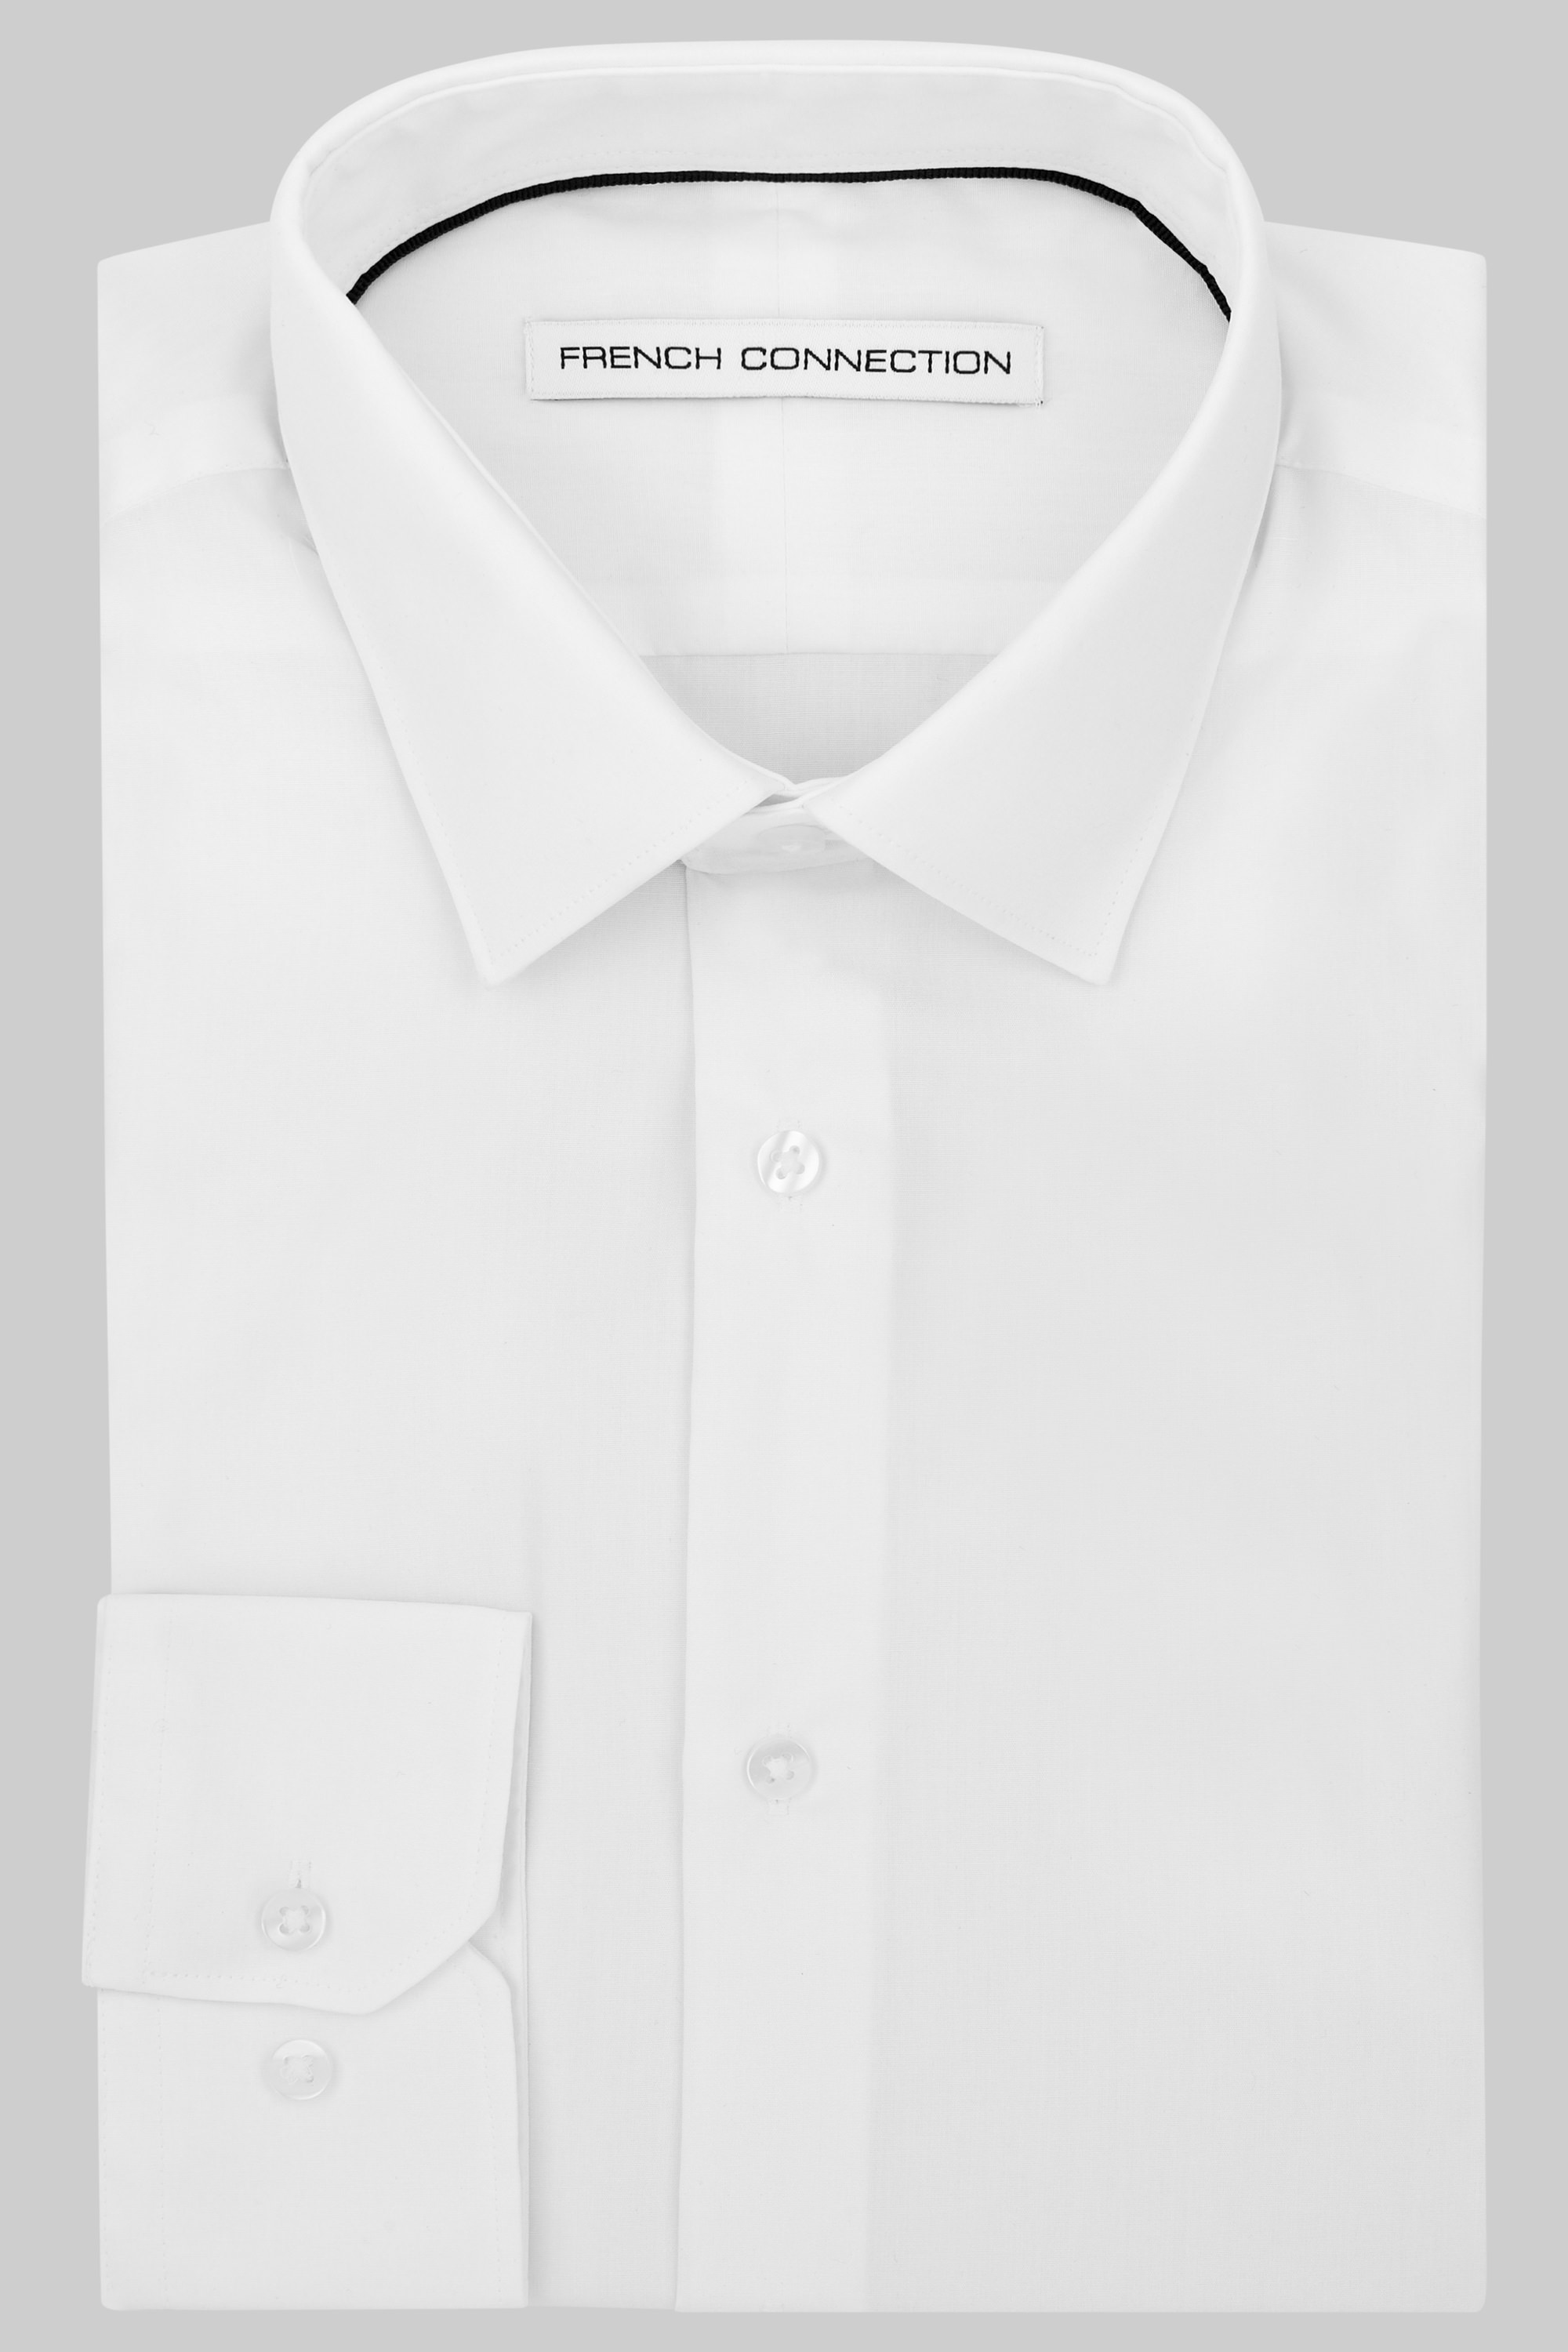 French connection slim fit white single cuff shirt White french cuff shirt slim fit